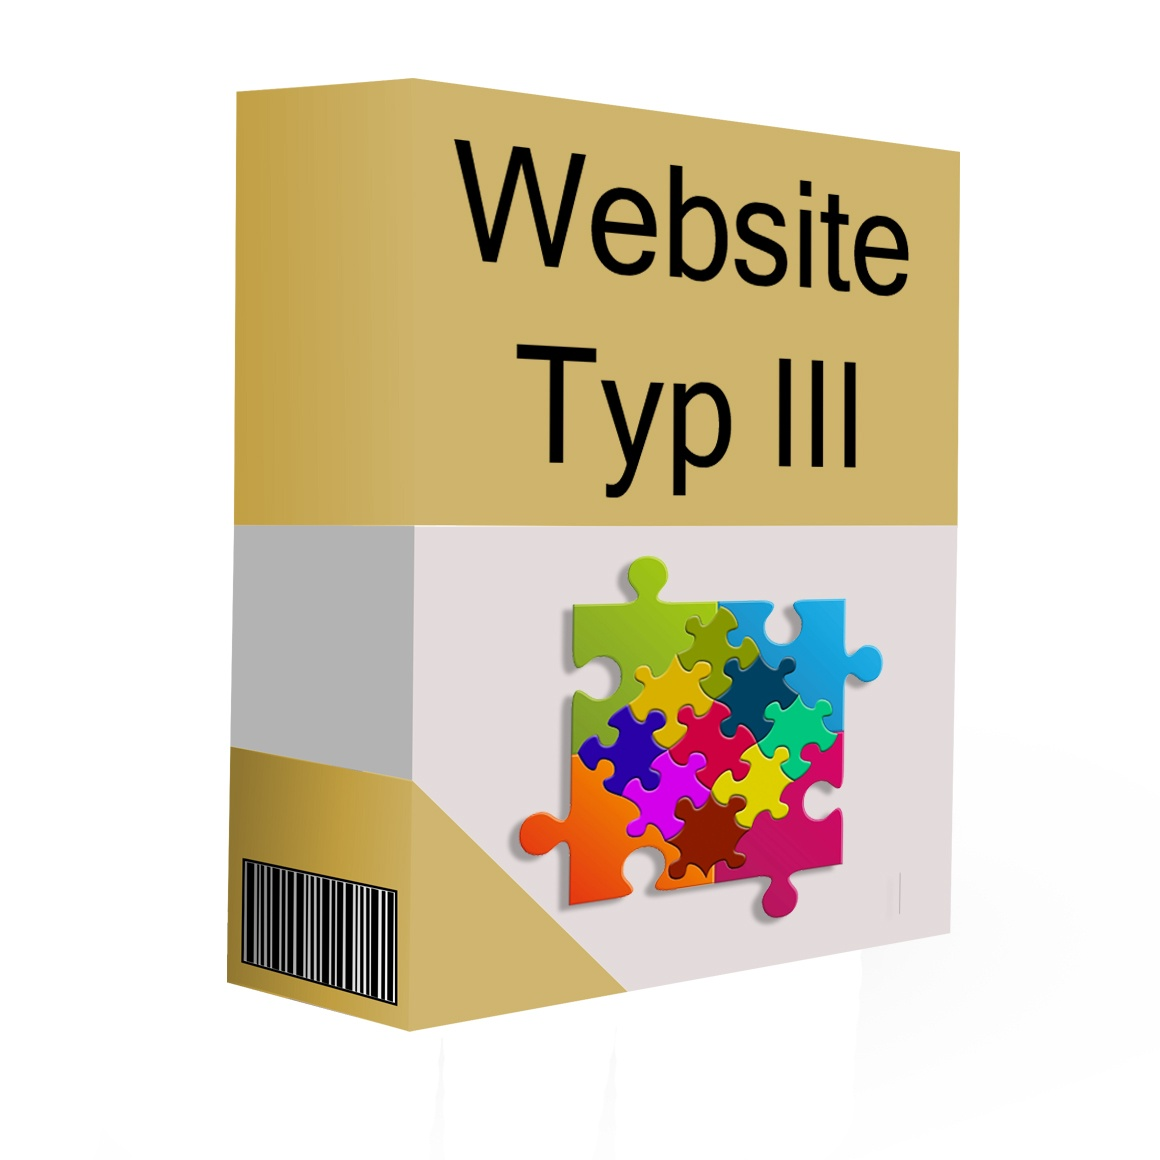 Website Typ III